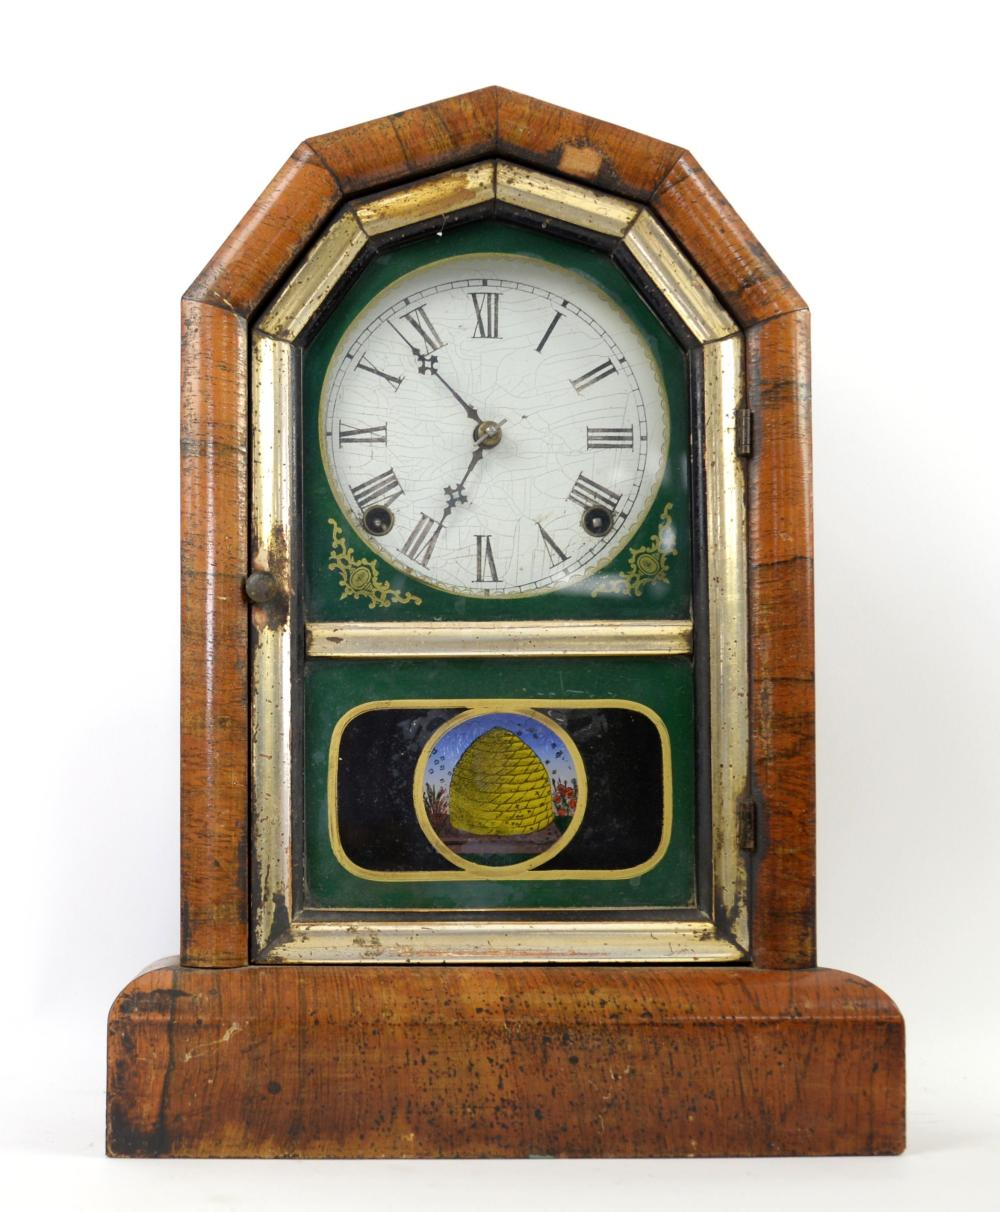 Mid 19th century American mantel clock with two tr